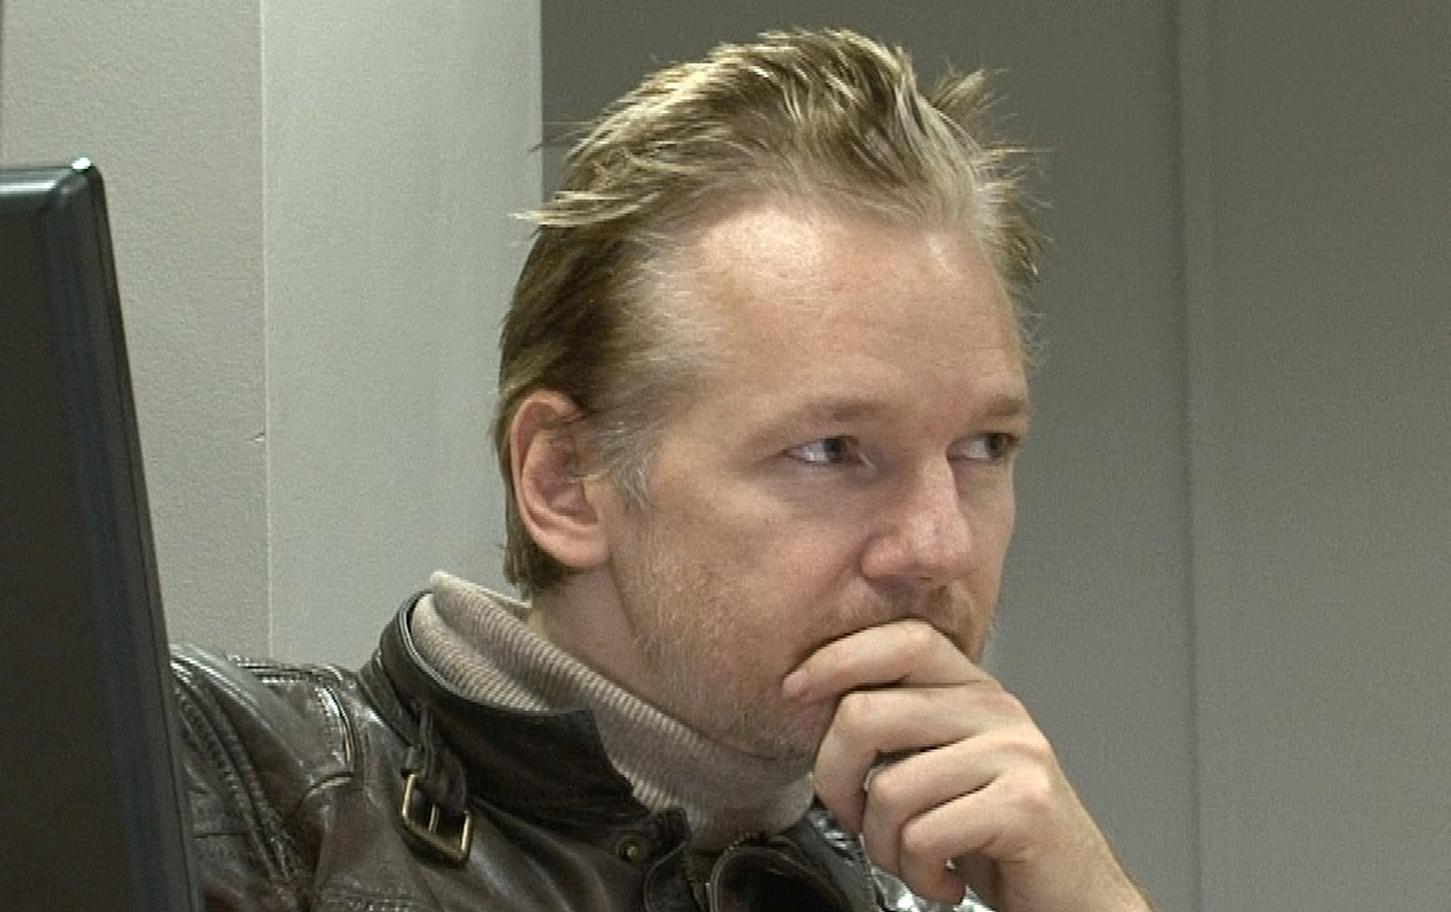 an analysis of the controversies surrounding julian paul assange Via| julian assange has been a pain in hillary clinton's side for a very long time now, as he has continuously released documents and information that indicates.